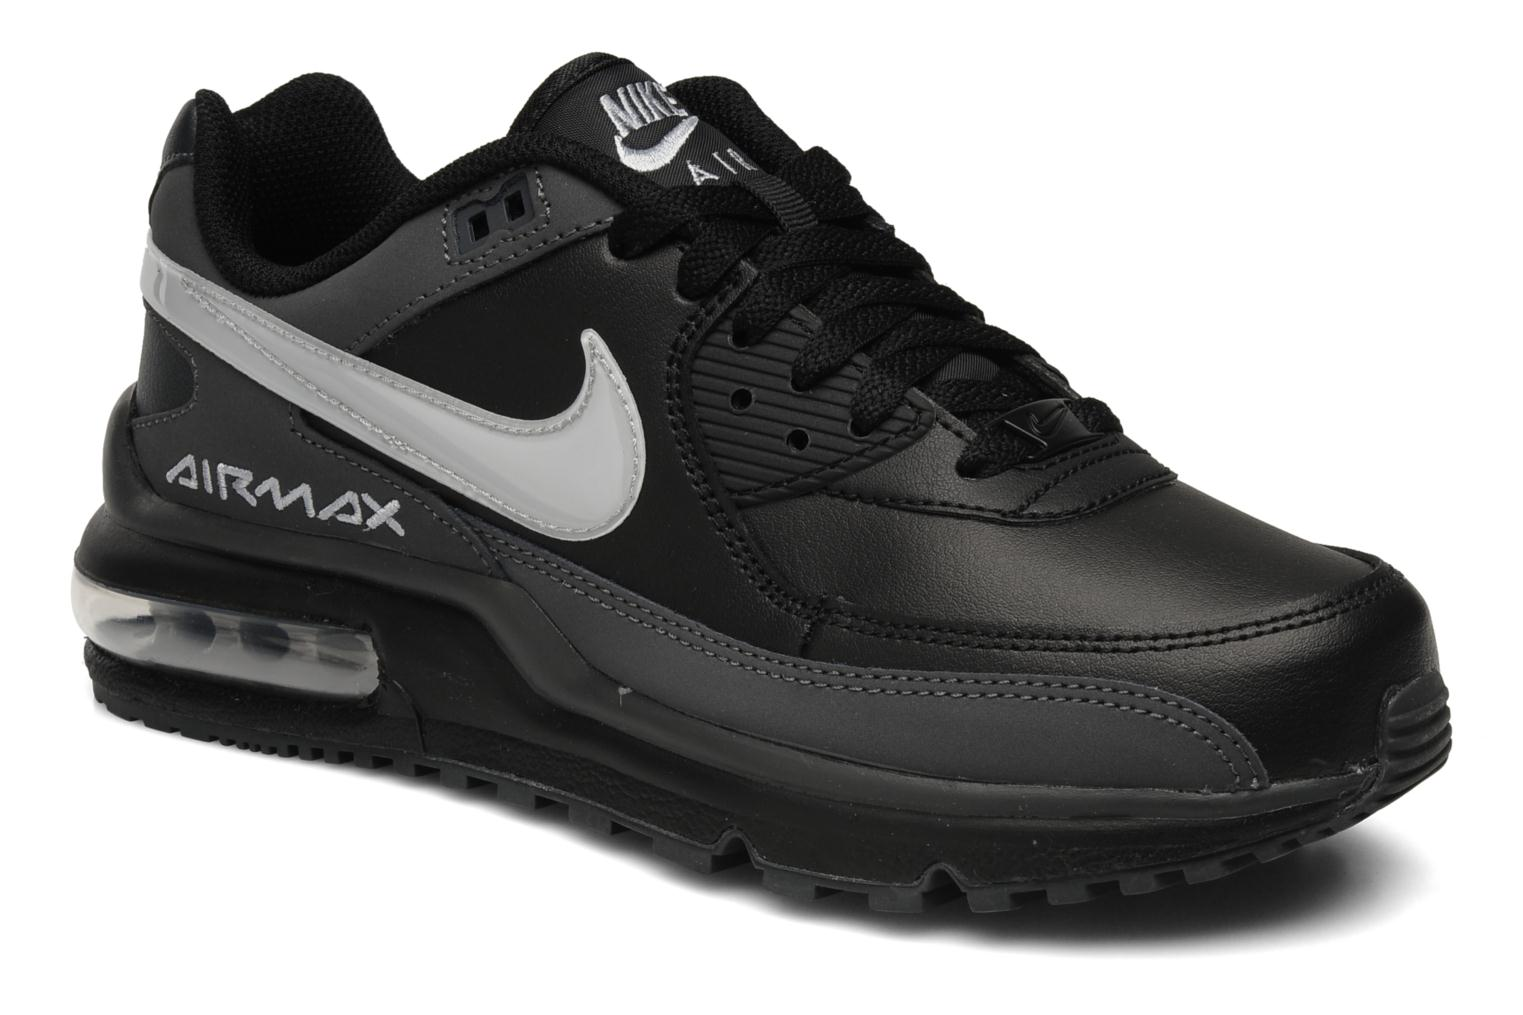 Baskets Ztdhqv1zn Air Chez Max Nike Sarenza Noir 132689 2 Ltd FxwxqSCX